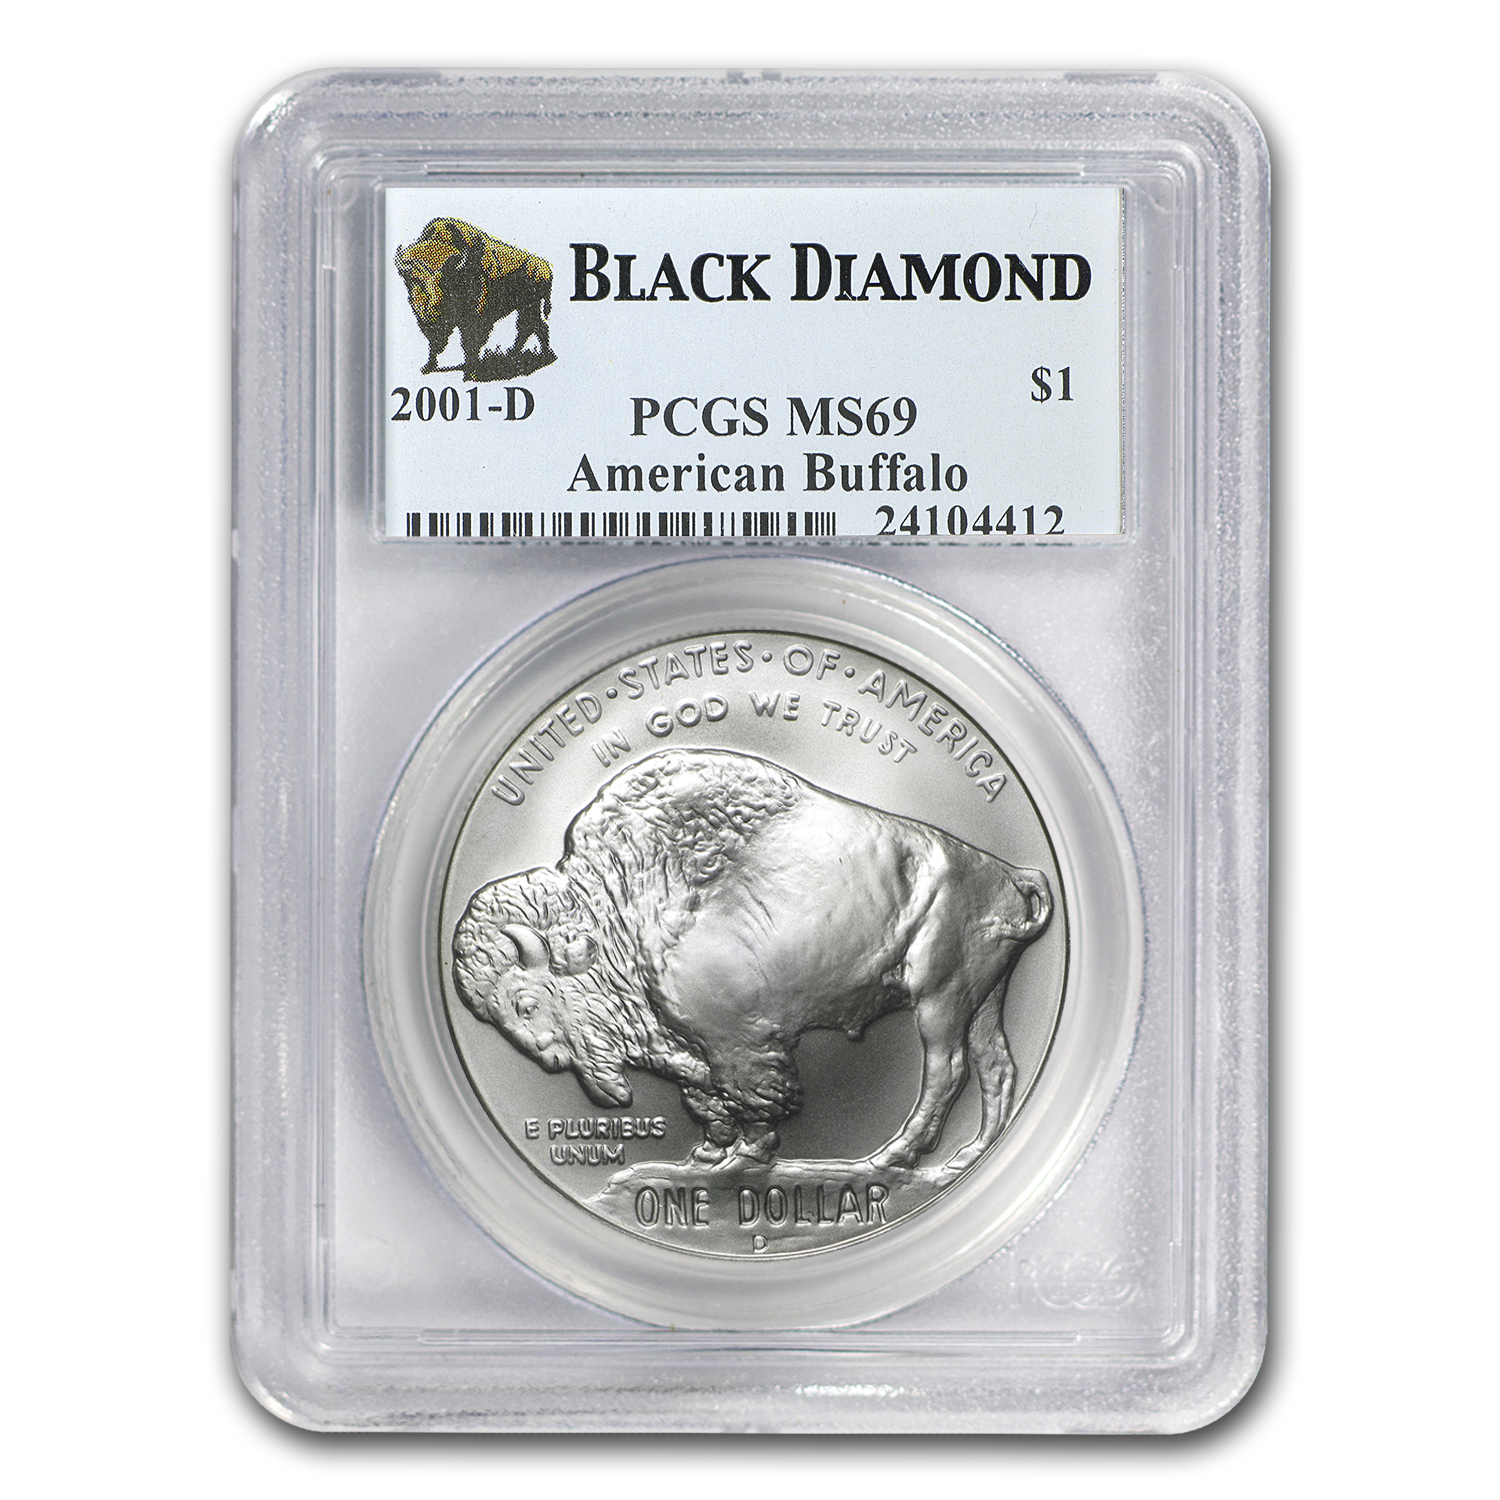 2001-D Buffalo Black Diamond $1 Silver Commem MS-69 PCGS